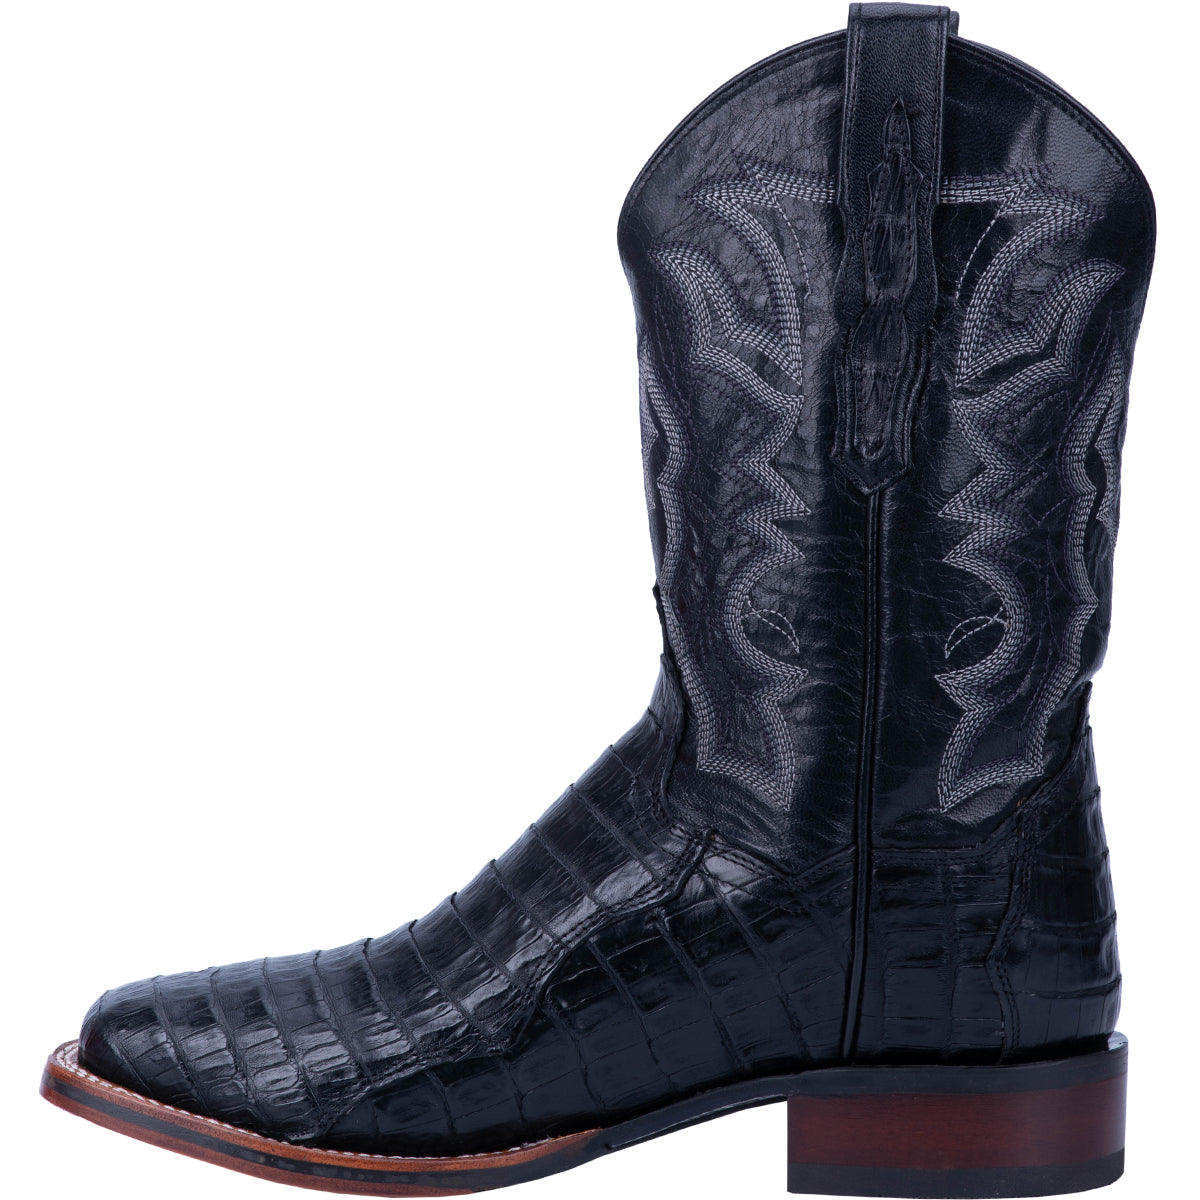 KINGSLY CAIMAN BOOT 5391880781866